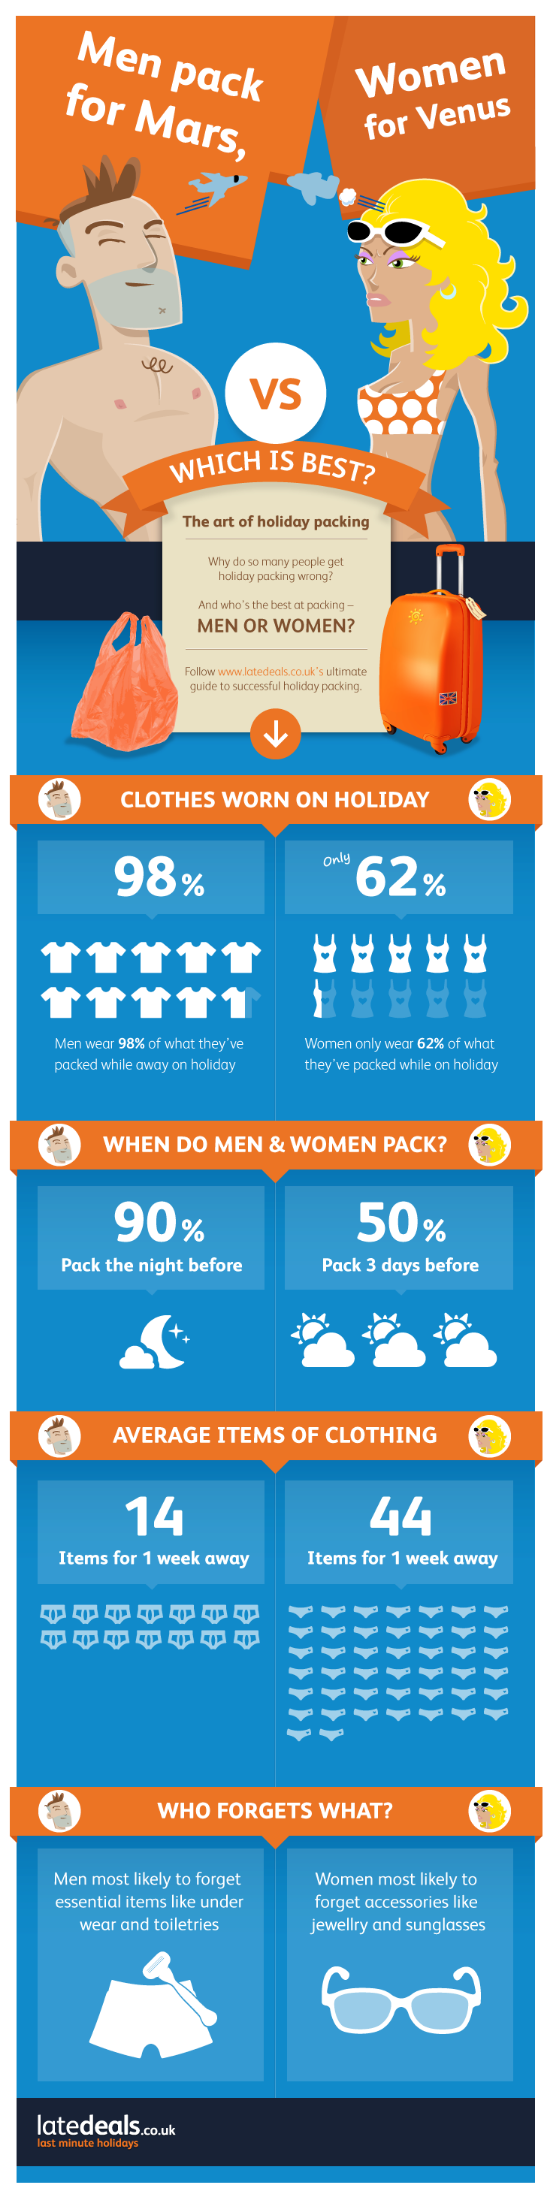 Source: http://www.infographs.org/2013/05/the-art-holiday-packing-infographic/